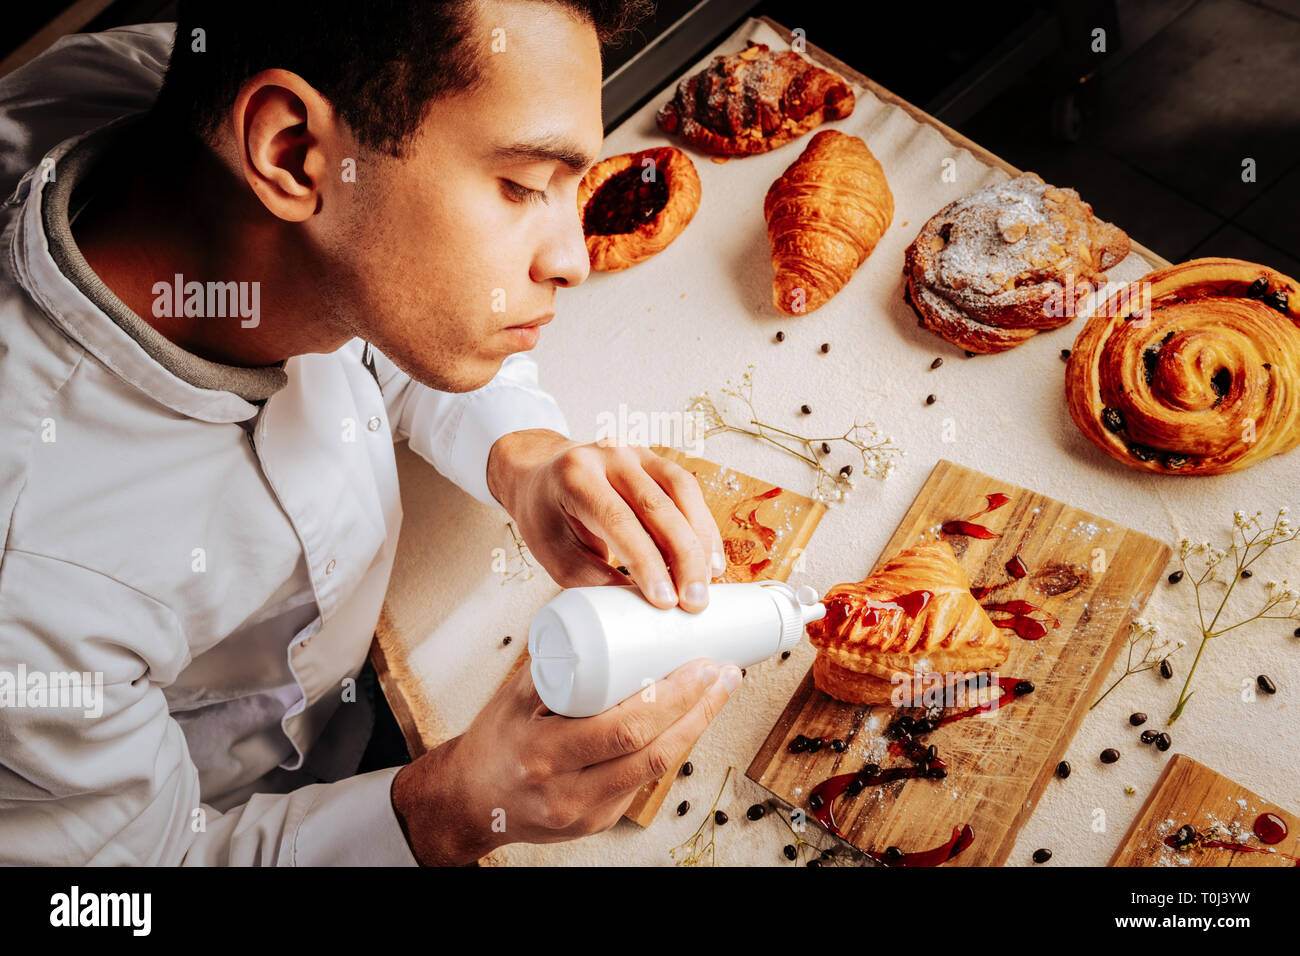 Diligent young baker feeling joyful while decorating pastry Stock Photo